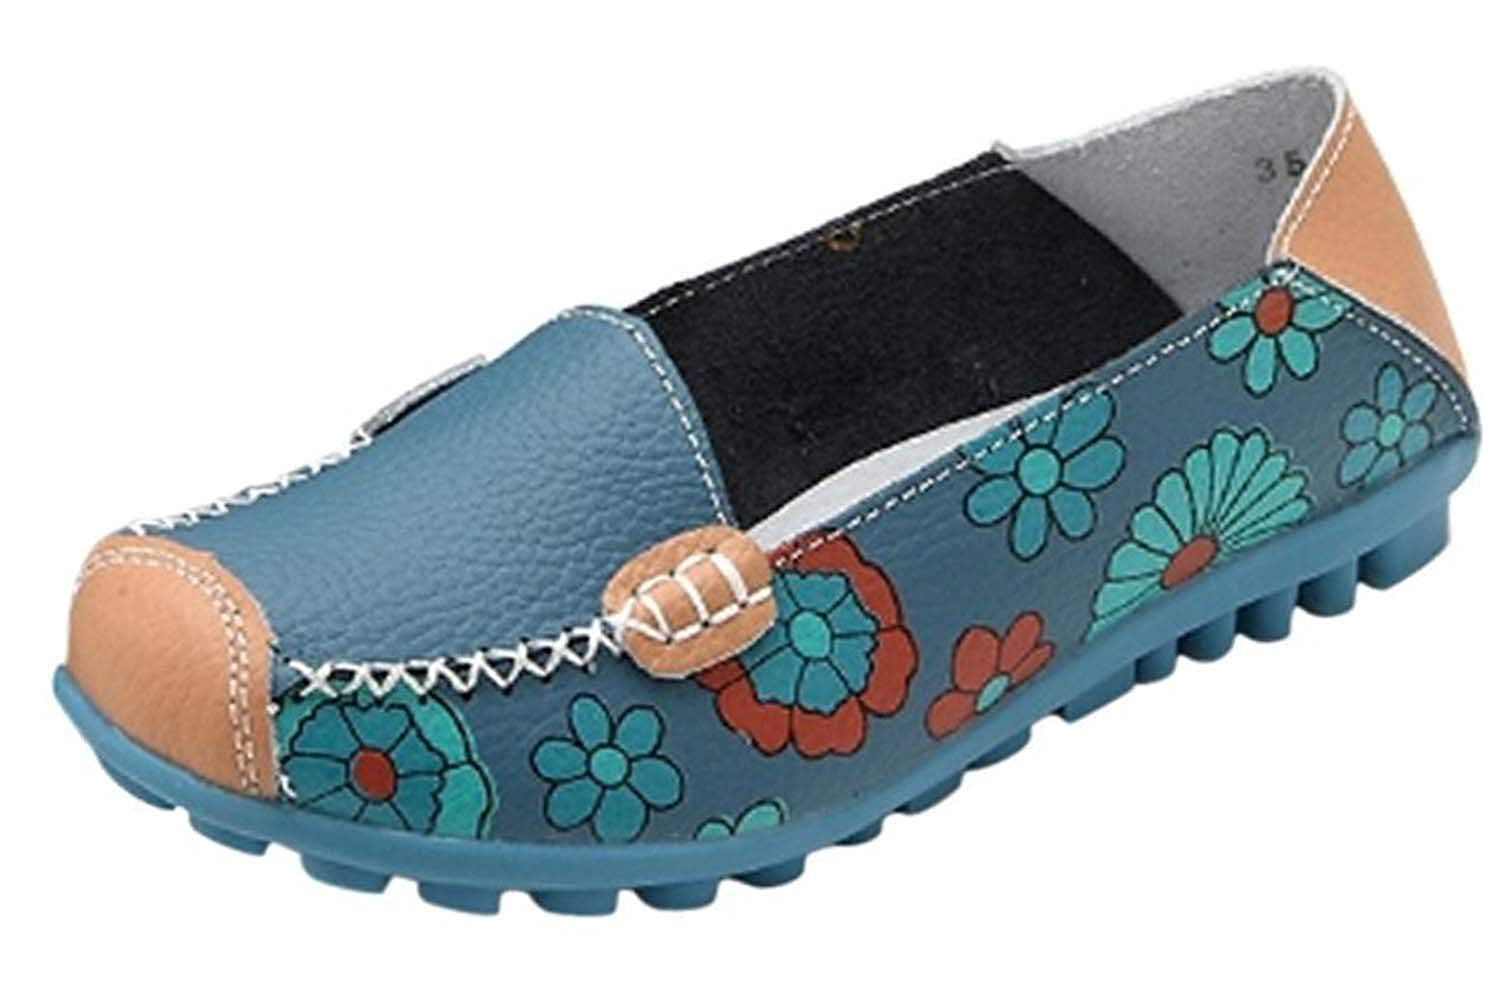 Maybest Women Bright Color Casual Flower Printed Slip On Leather Flat Pumps Moccasins Dancing Shoes